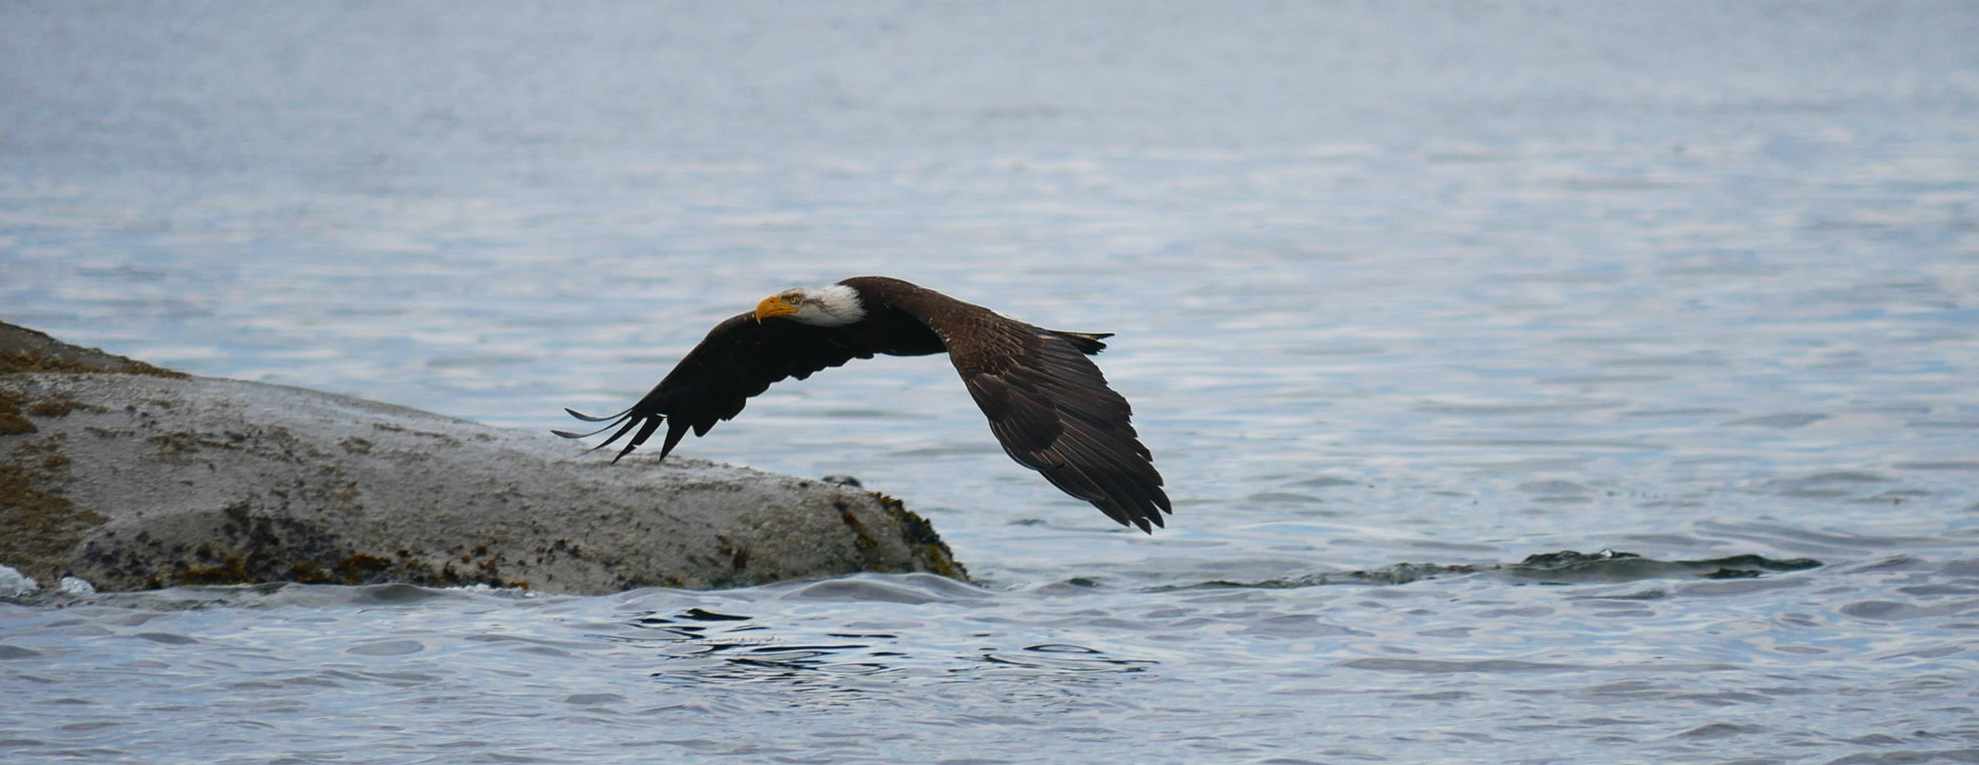 Bald Eagle coming in to land. Photo by Val Watson.